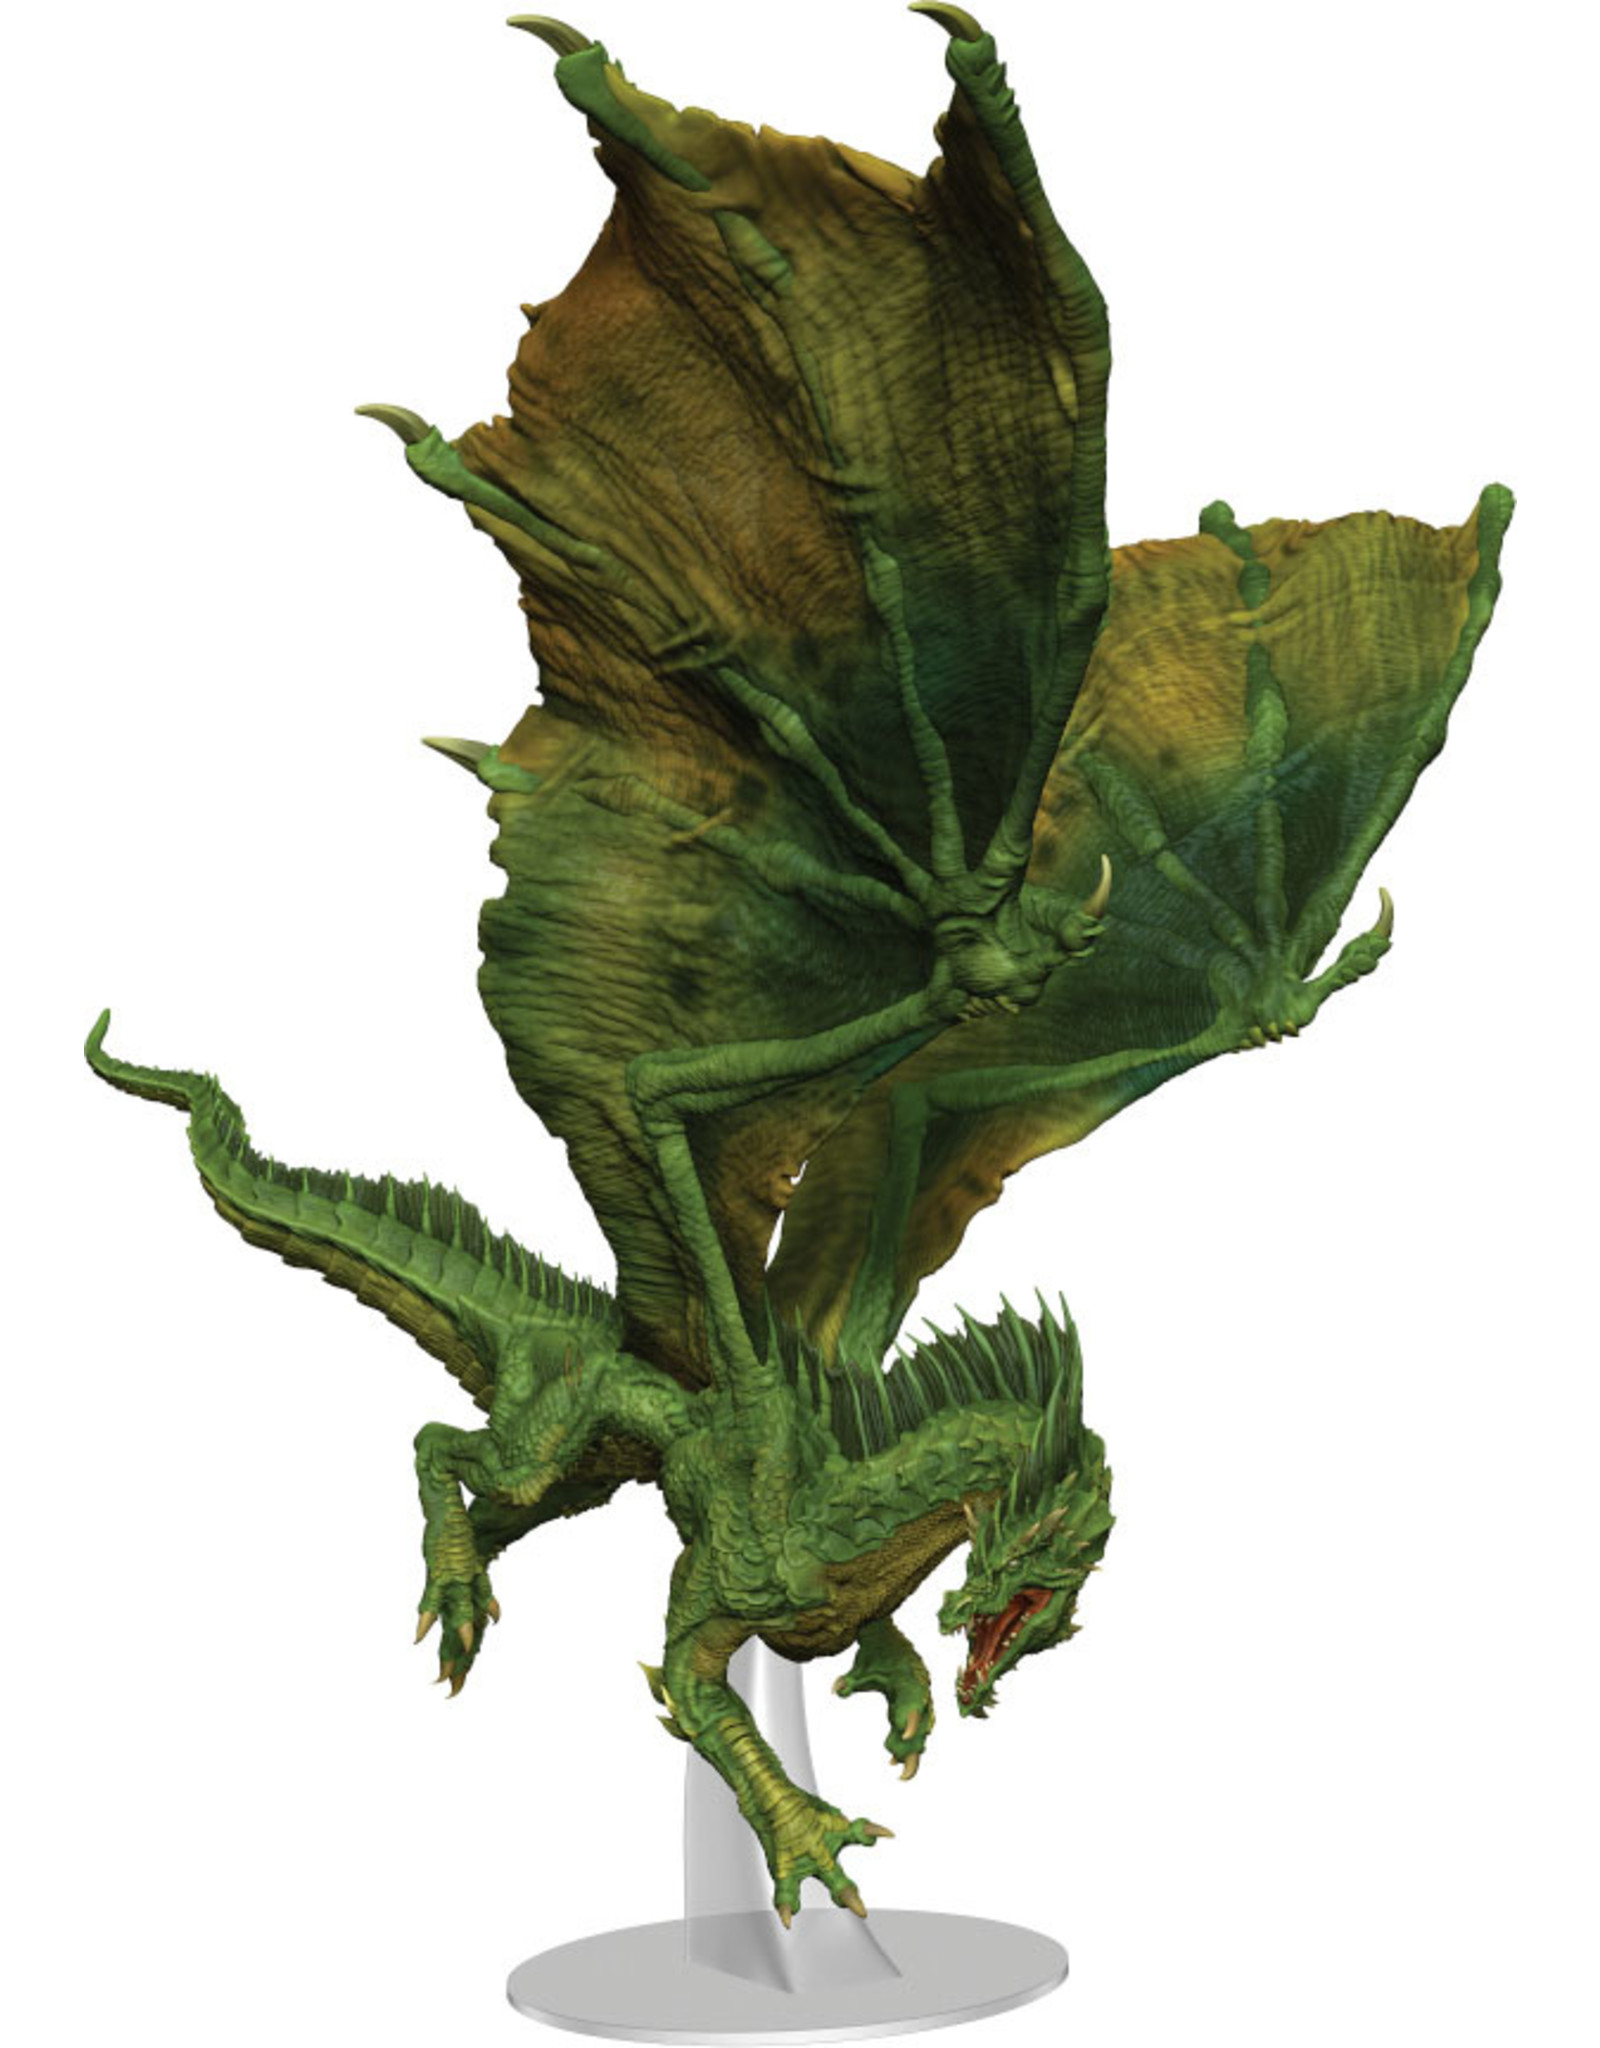 WizKids Dungeons & Dragons Fantasy Miniatures: Icons of the Realms - Adult Green Dragon Premium Figure